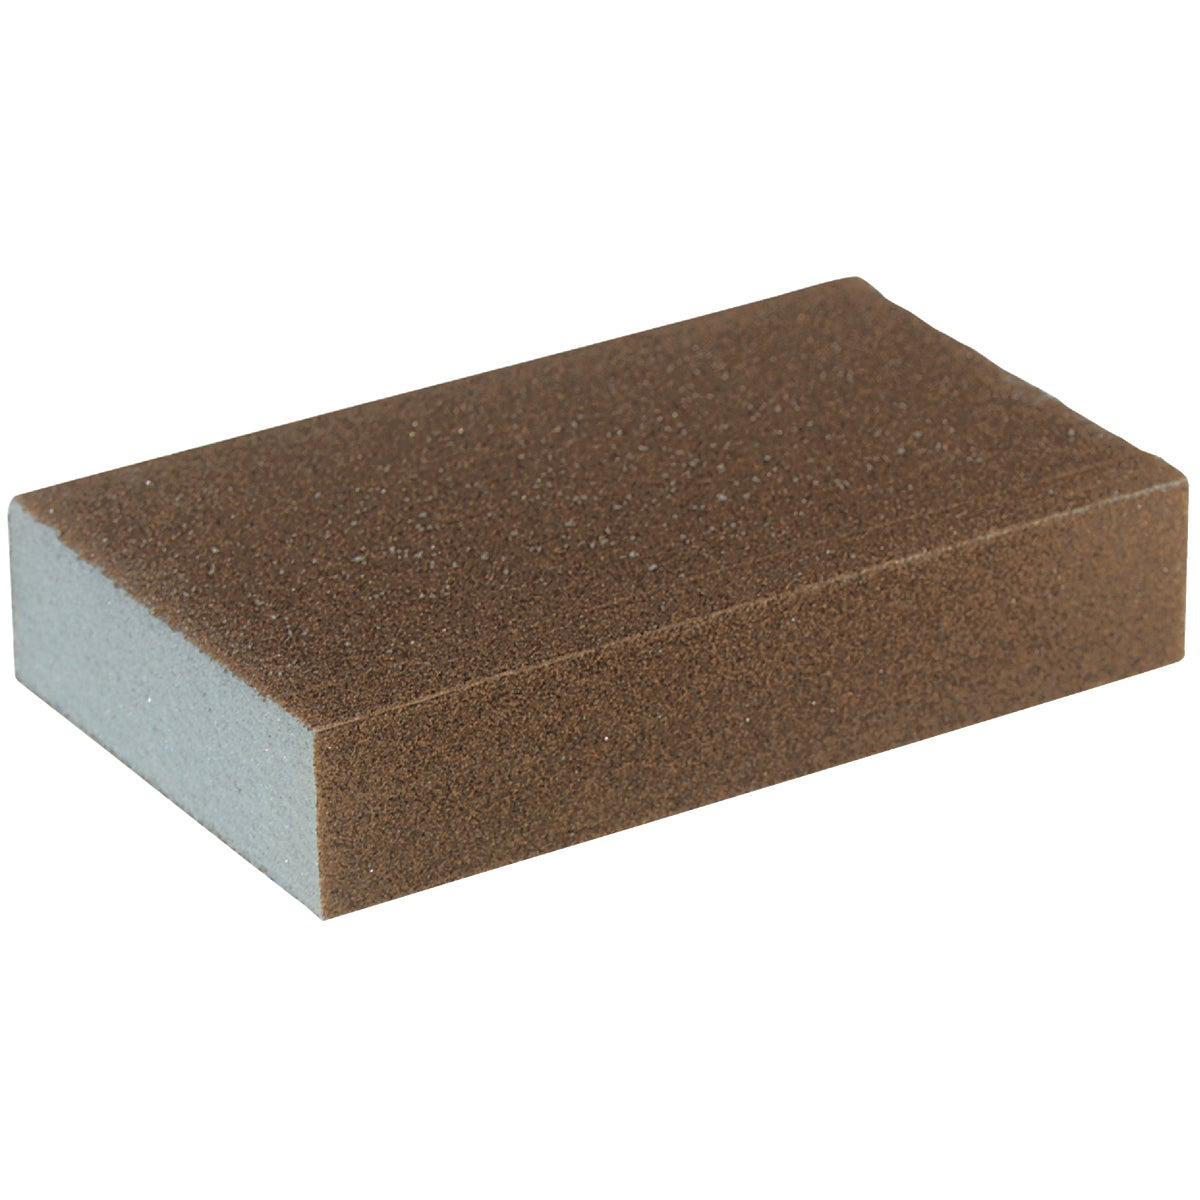 80/120 SANDING SPONGE - 352594 by Ali Industries Inc